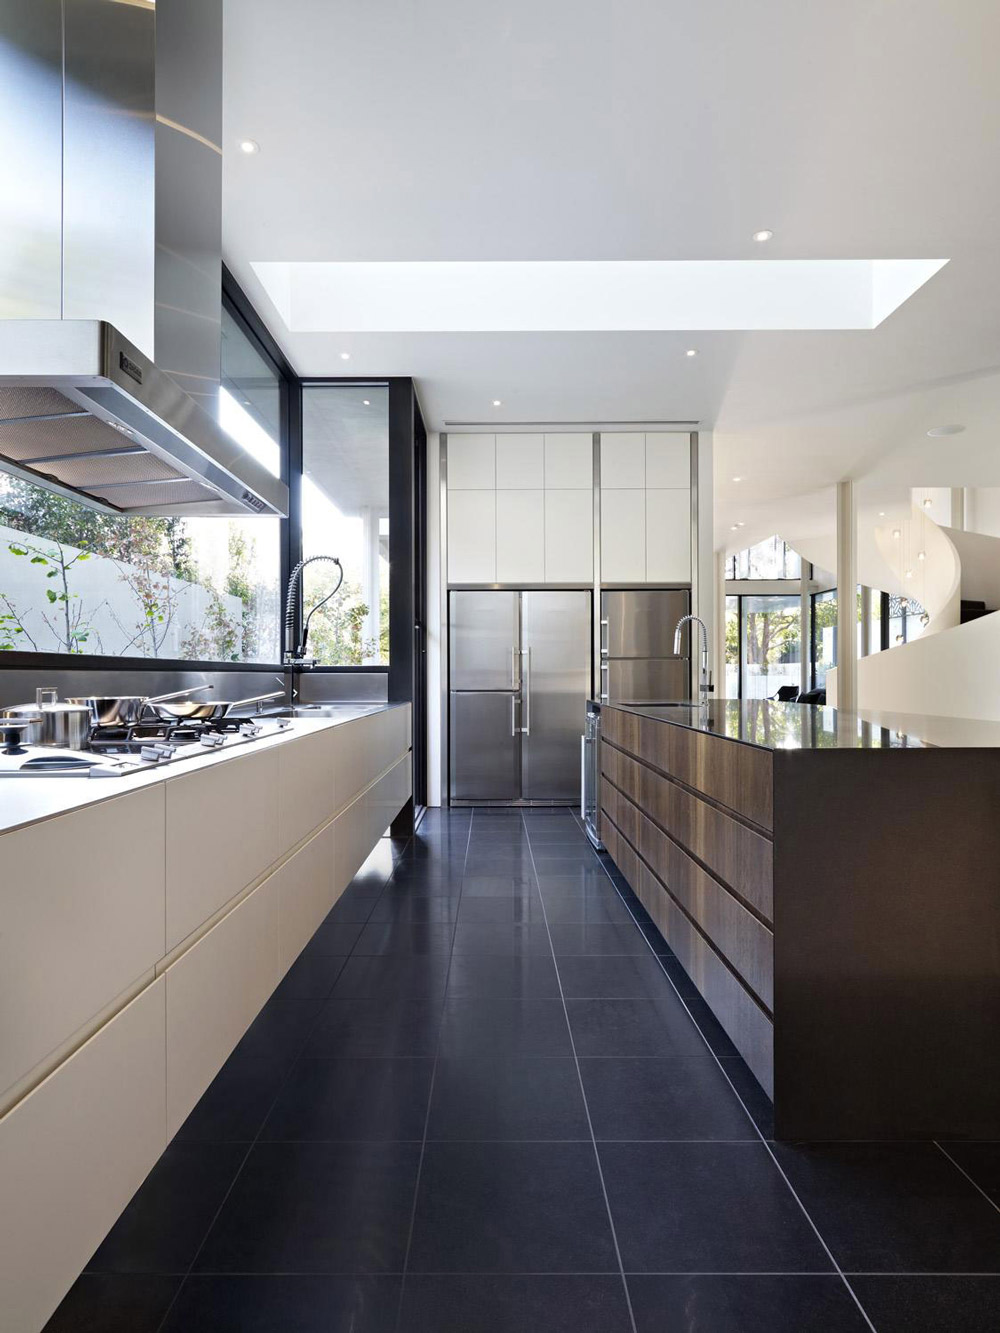 kitchen designs melbourne australia verdant avenue home in melbourne australia by robert 823